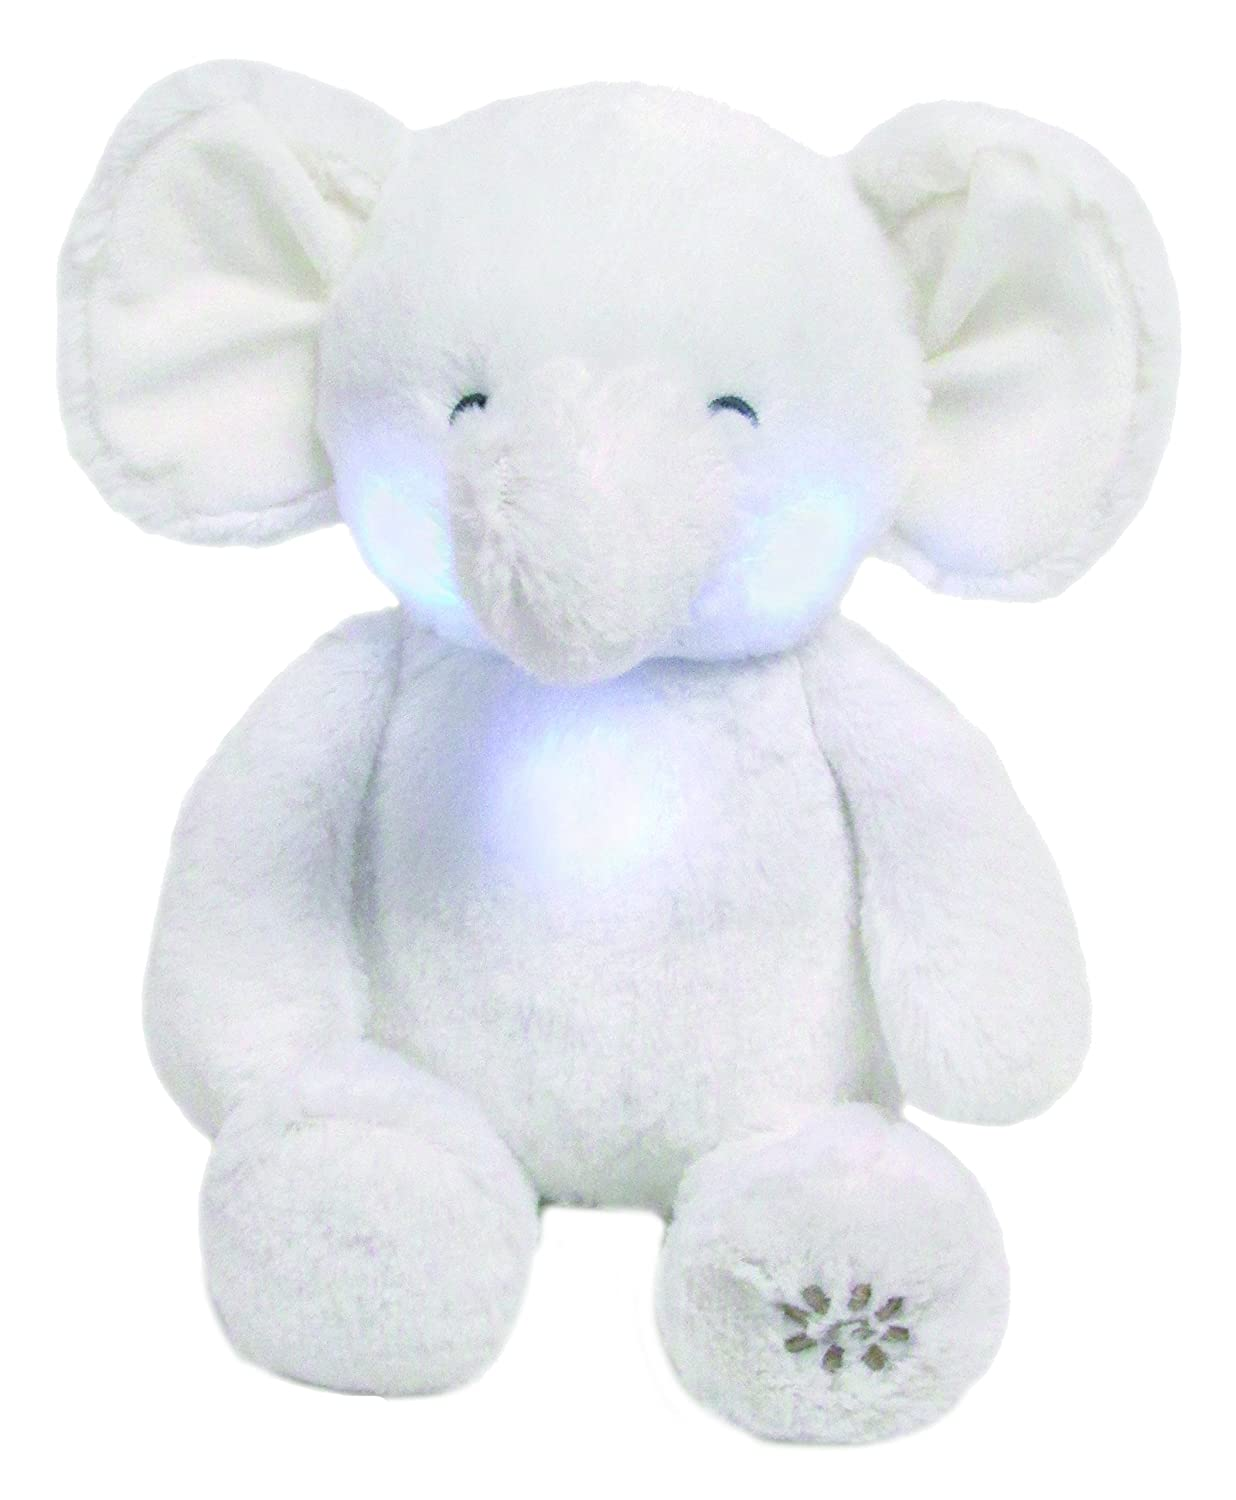 Carter's Music & Lights Elephant Plush Soother, 10.5